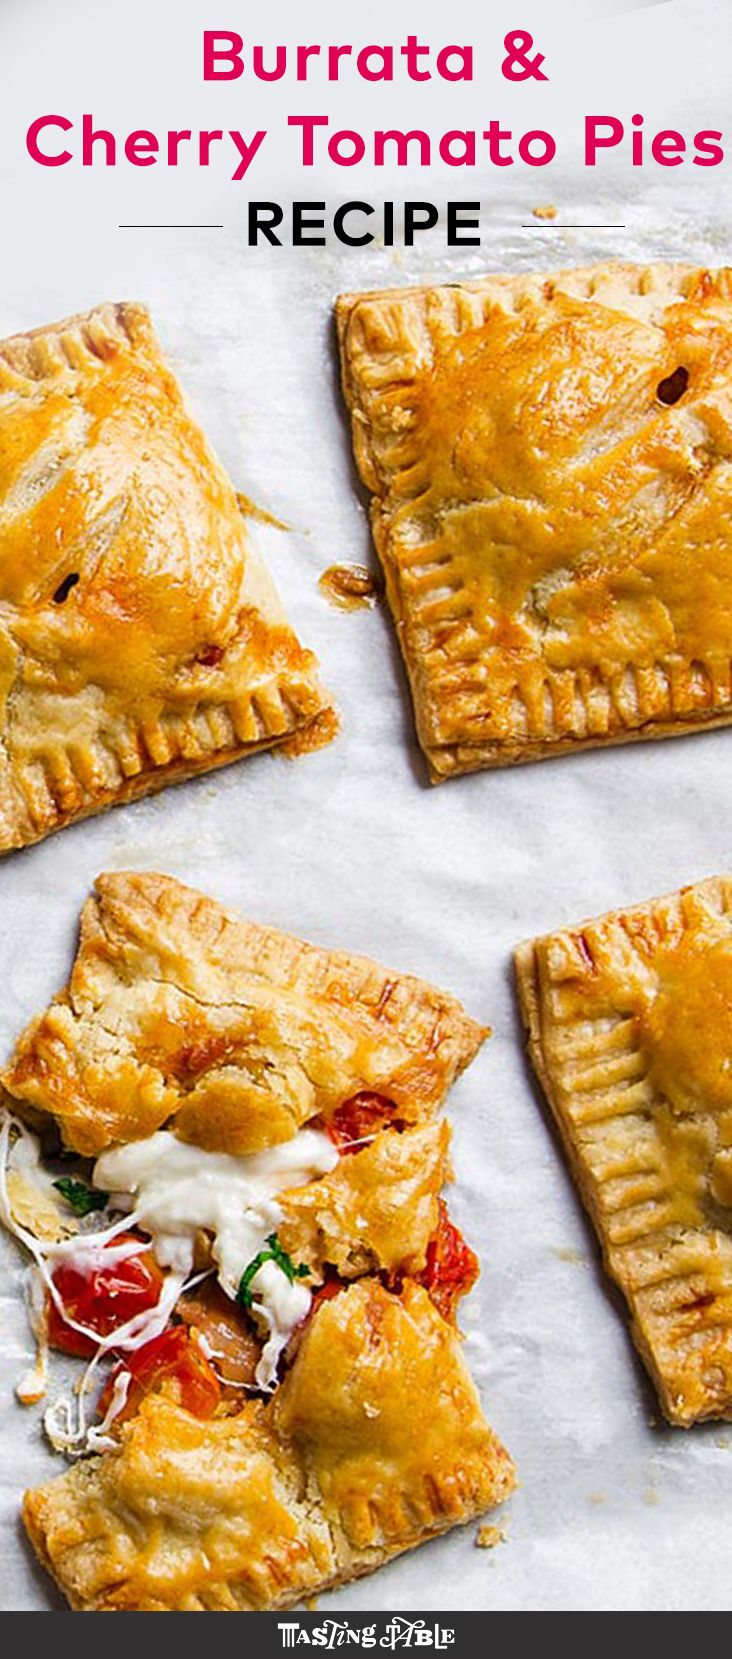 Use up your excess summer tomatoes in these flaky, cheesy tomato hand pies.